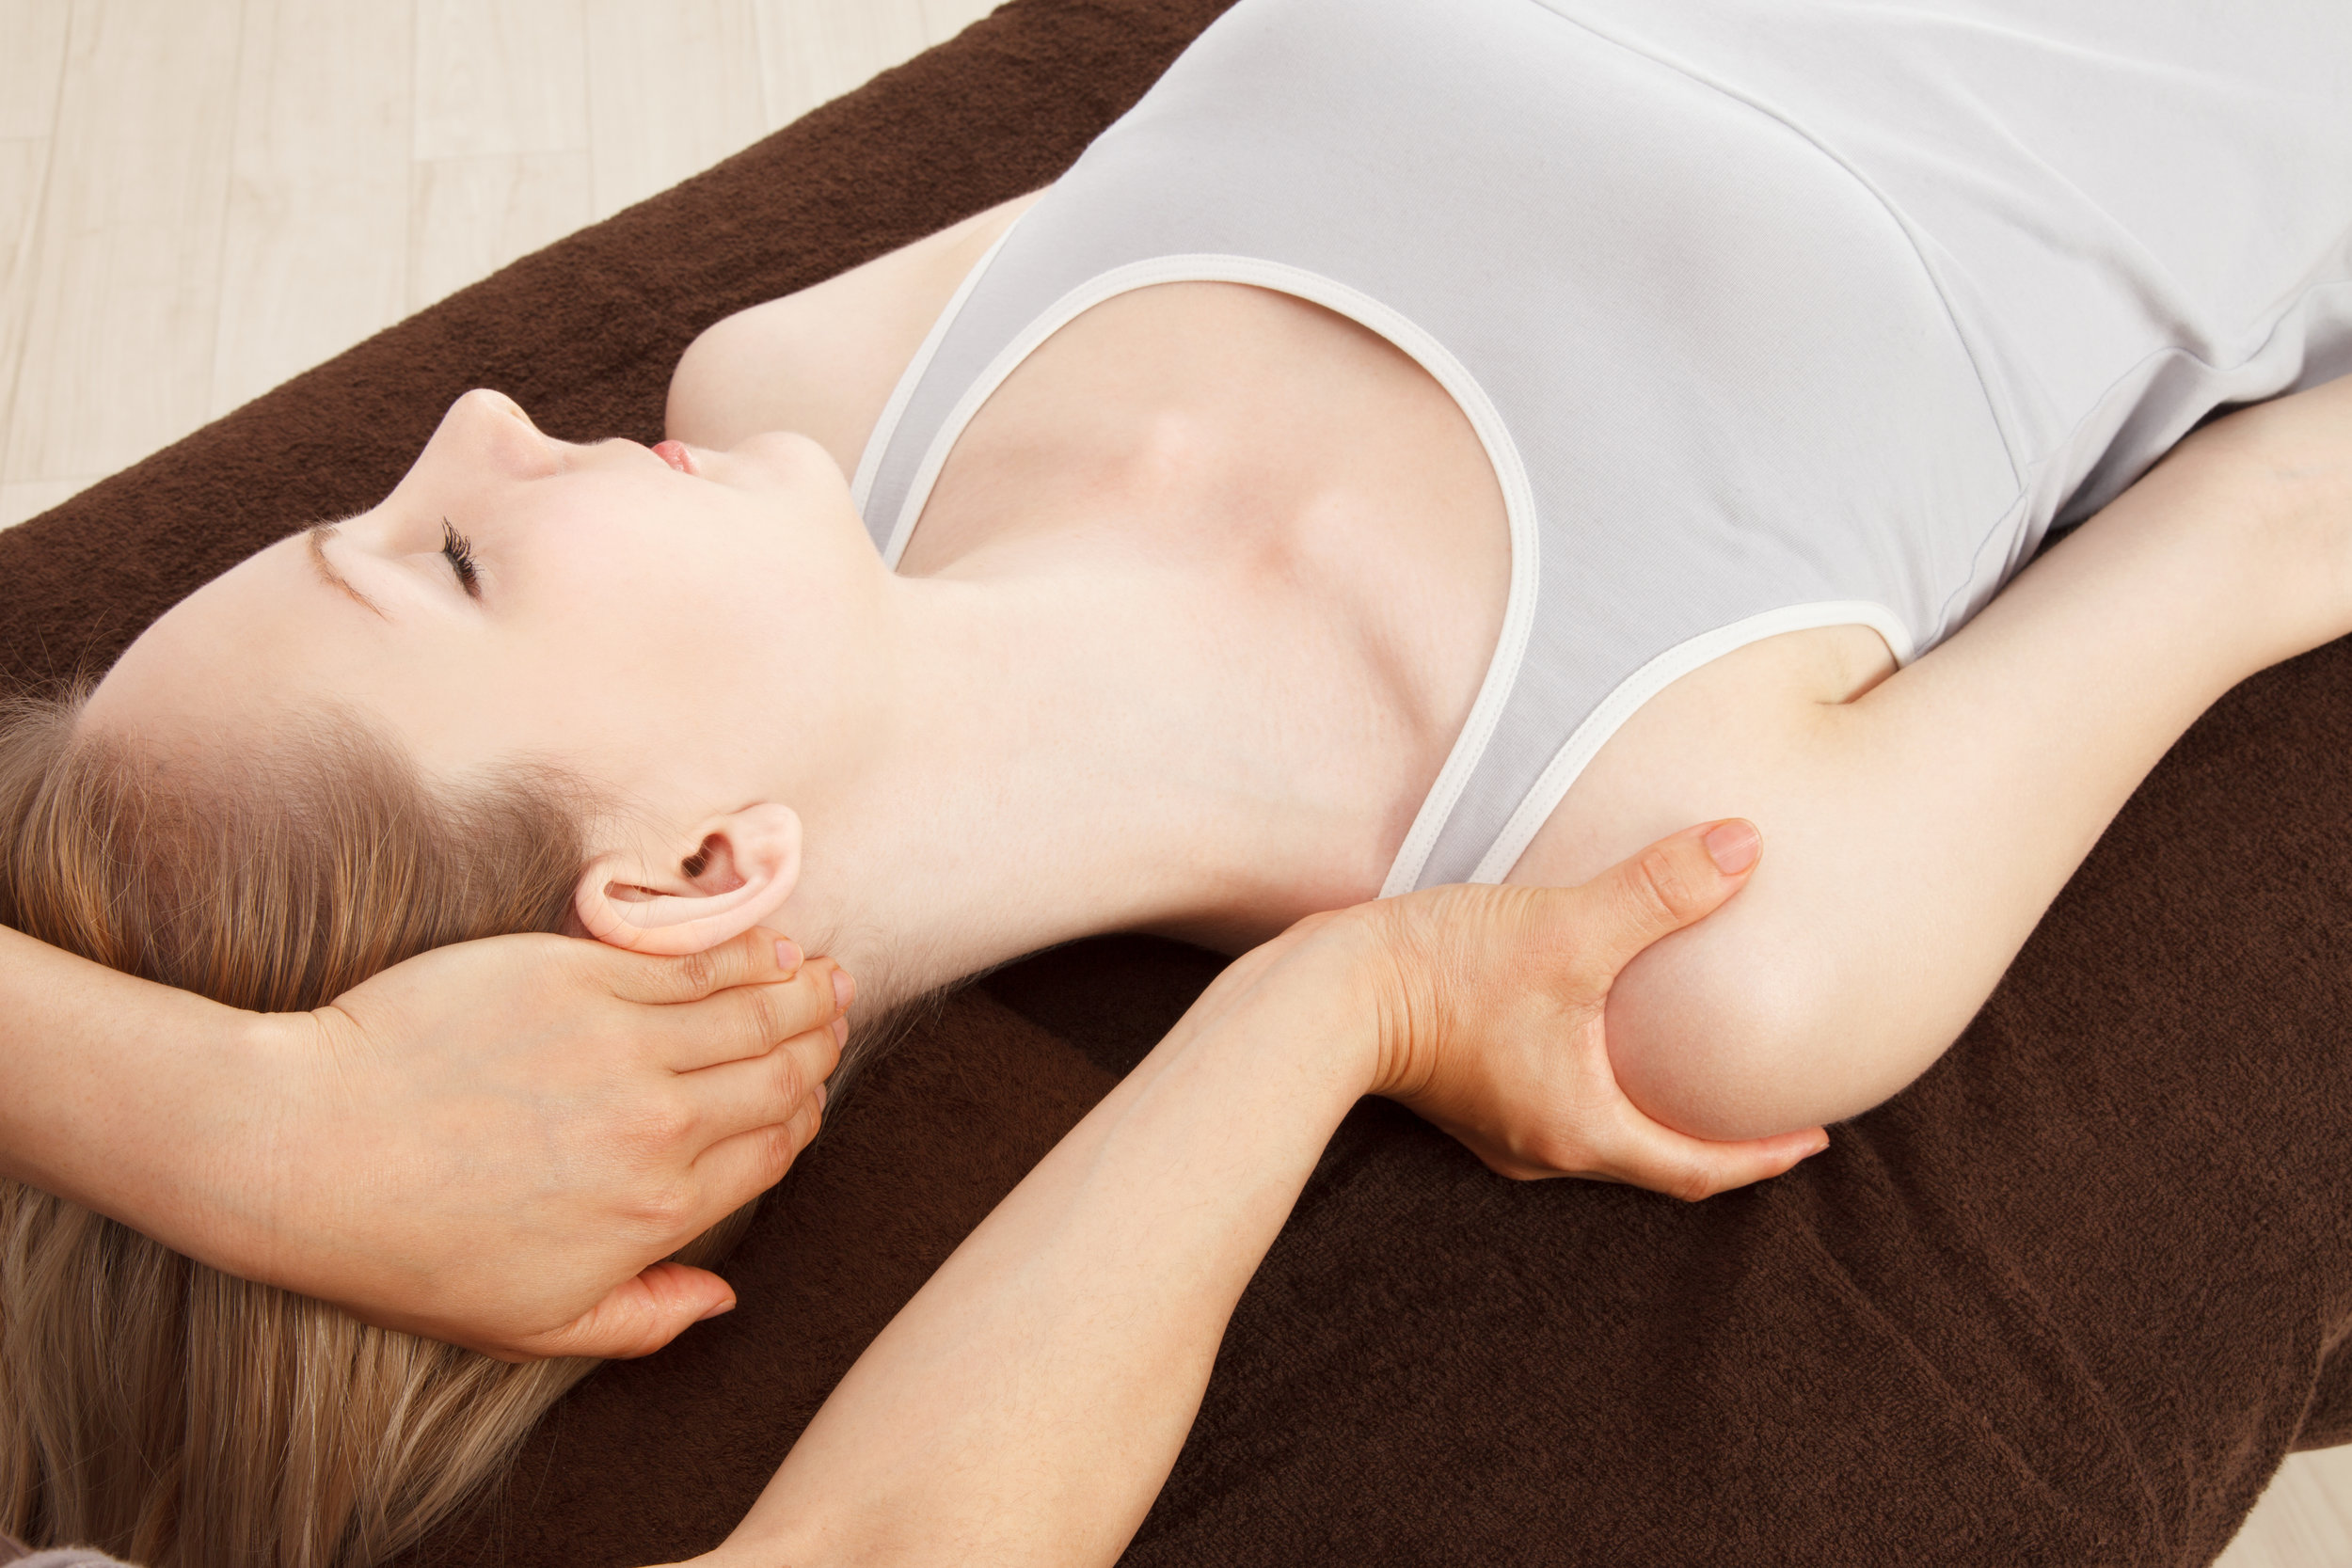 Gentle - Non-invasive, gentle touches that relieve pain and correct misalignment of the Atlas Subluxation Complex.